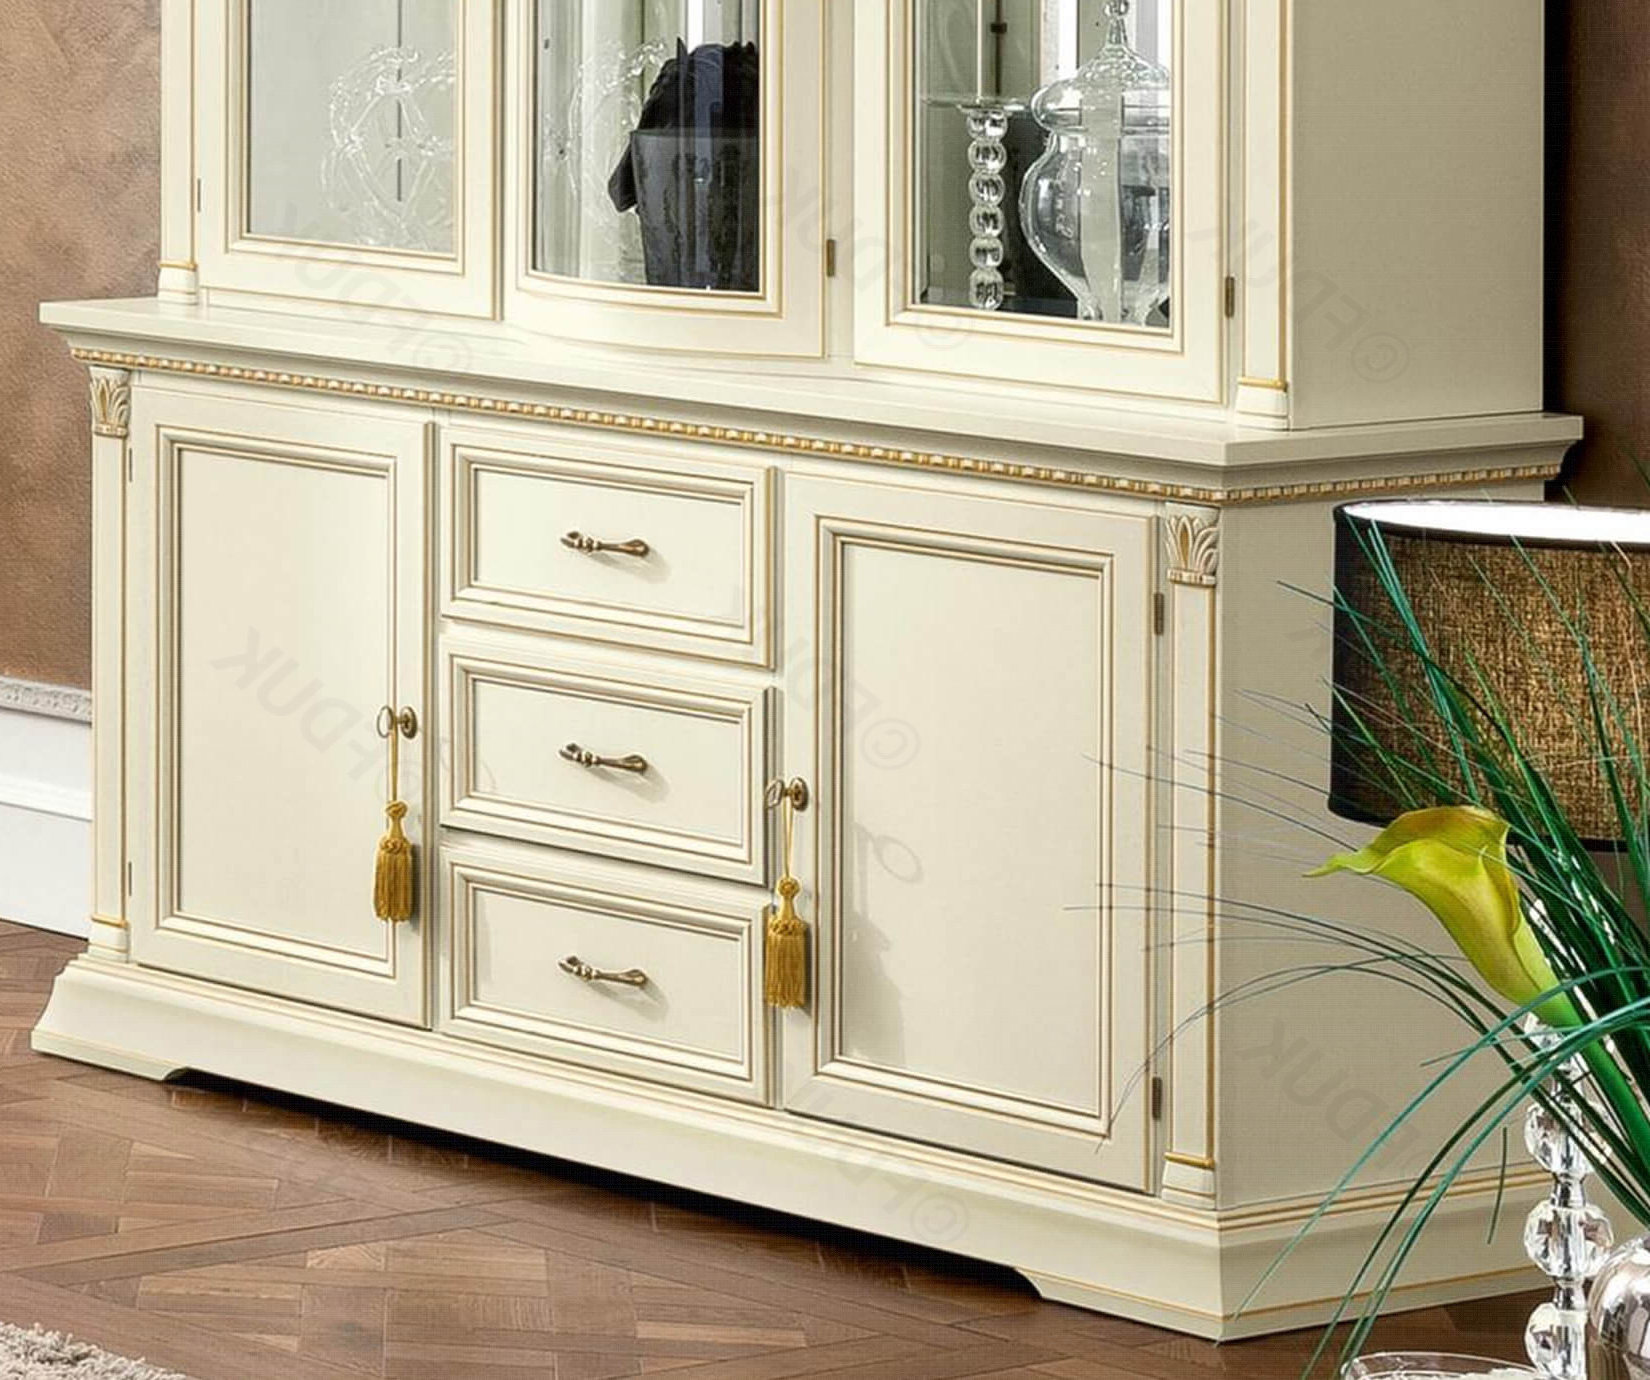 Camel Group Treviso White Ash Finish 2 Door 3 Drawer Buffet Regarding 2 Door 3 Drawer Buffets (View 6 of 20)